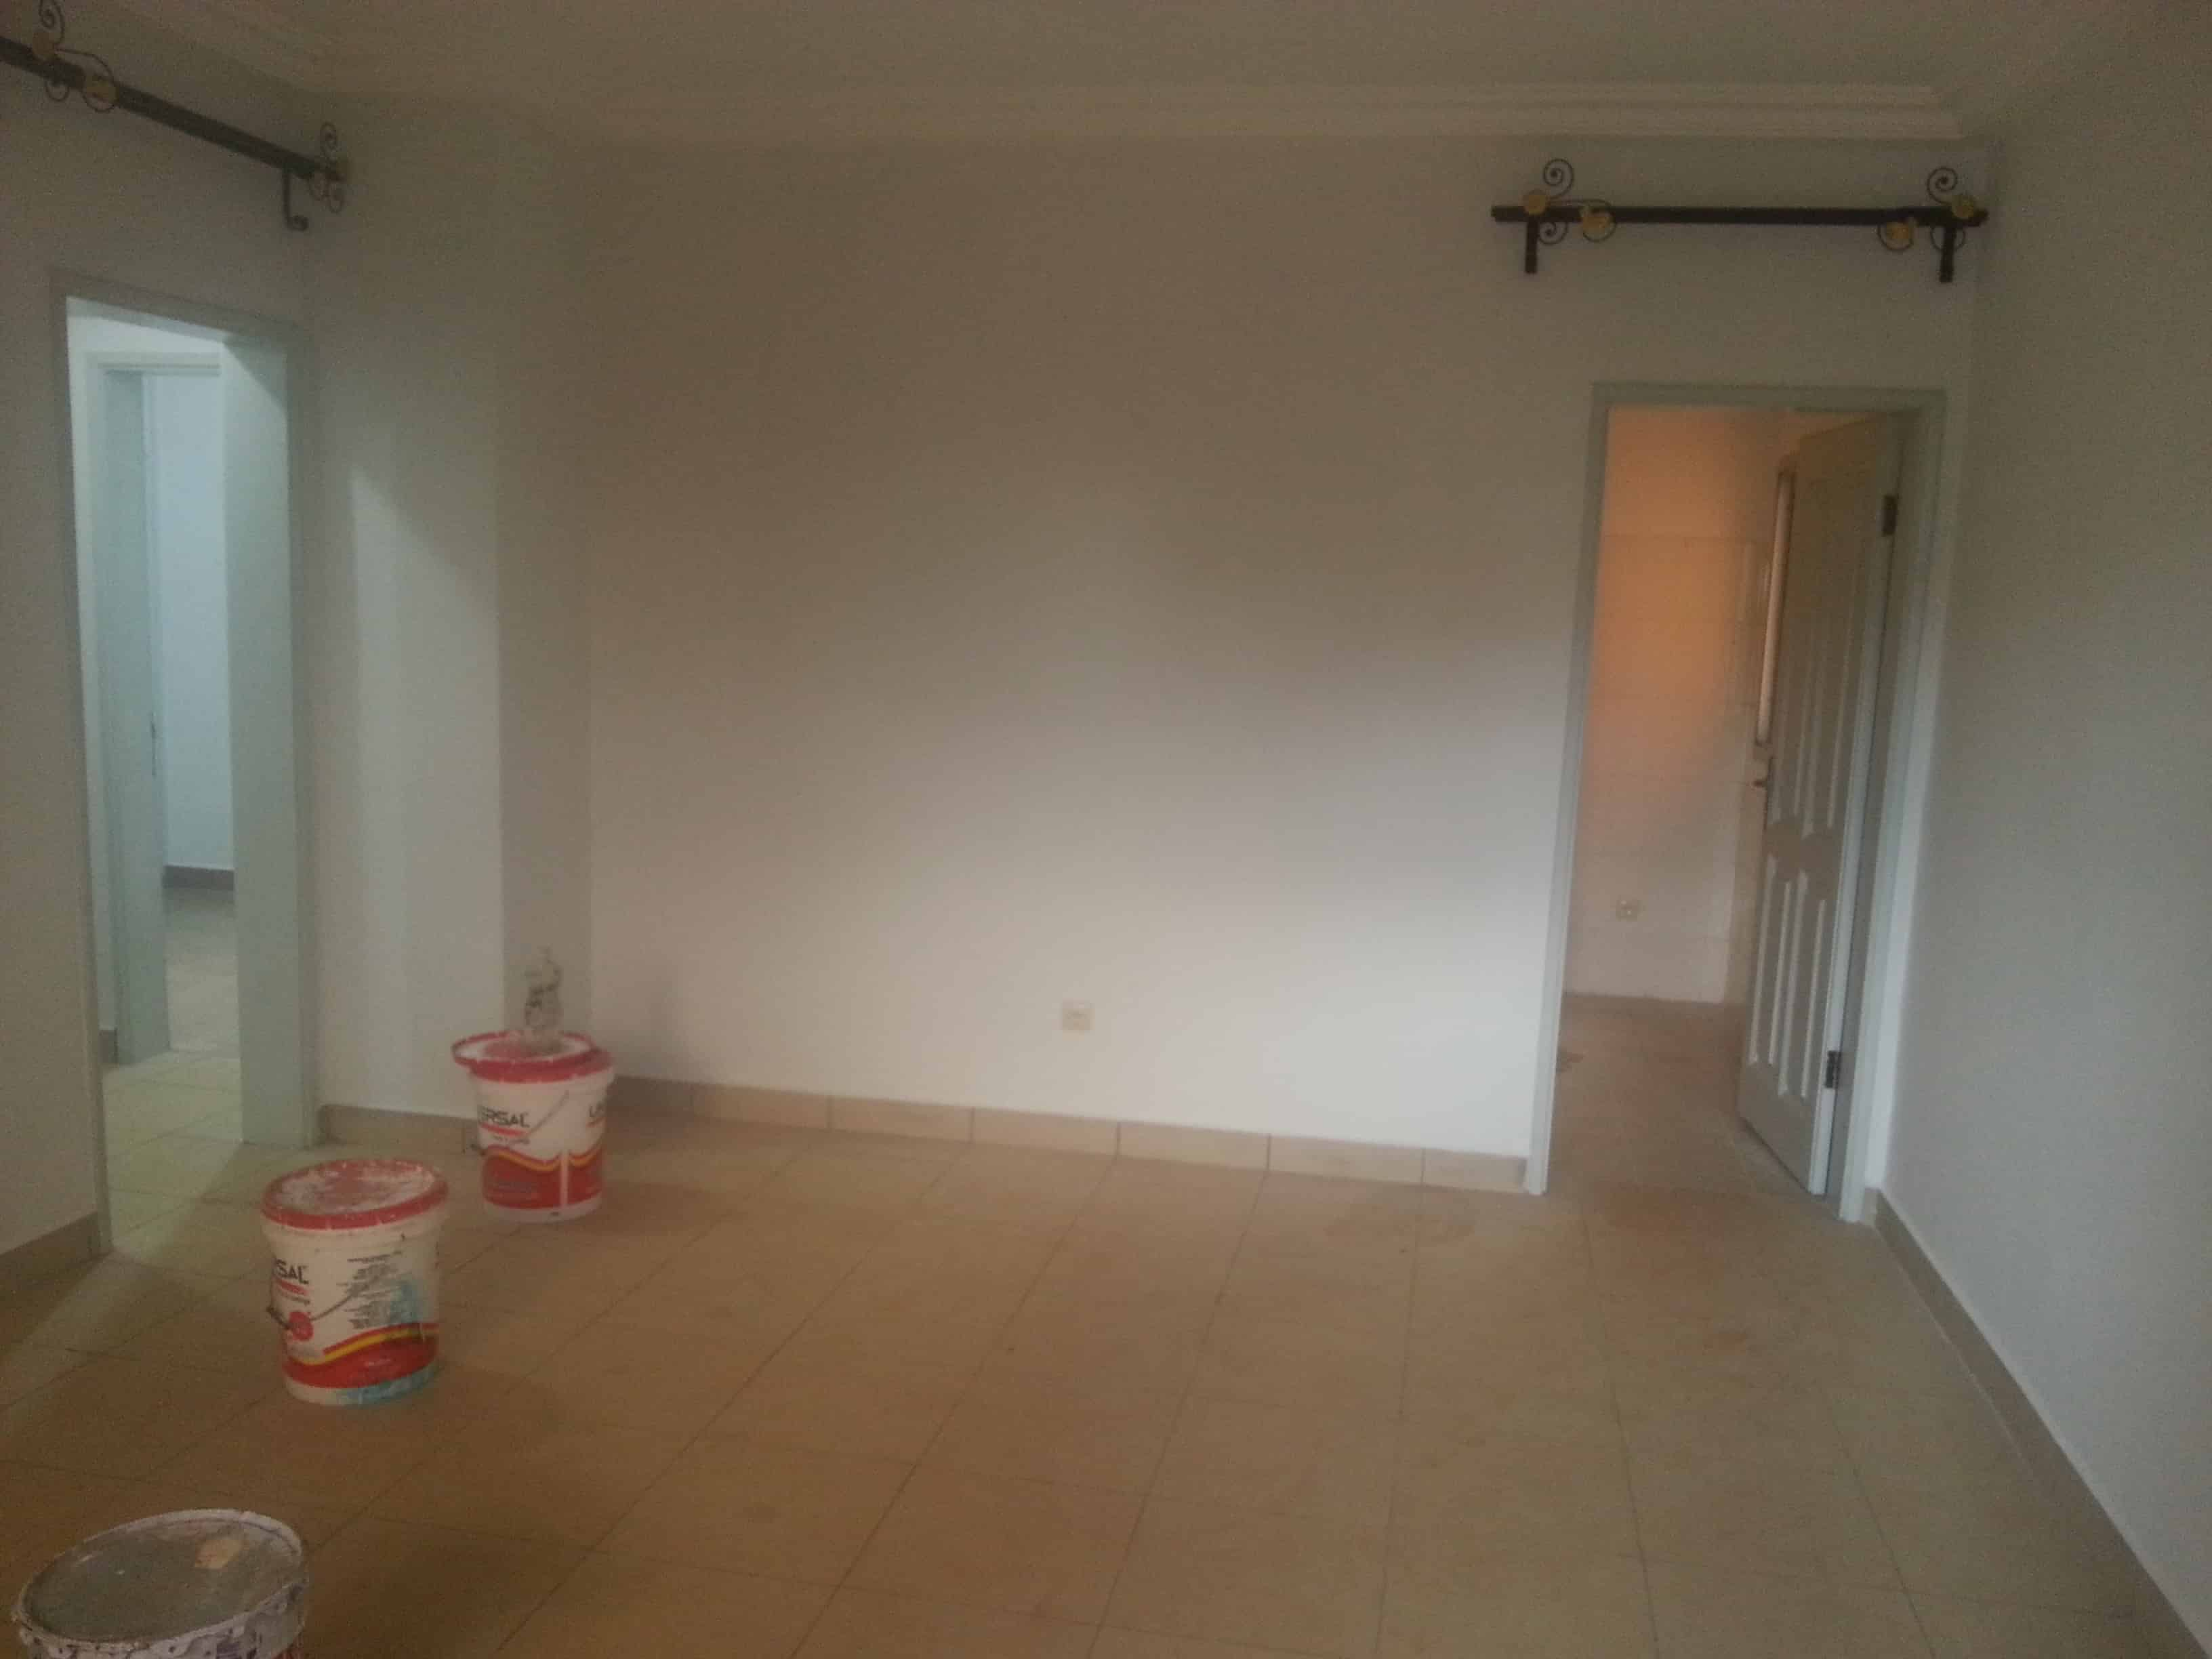 Apartment to rent - Yaoundé, Mimboman IV, maetur - 1 living room(s), 2 bedroom(s), 2 bathroom(s) - 150 000 FCFA / month